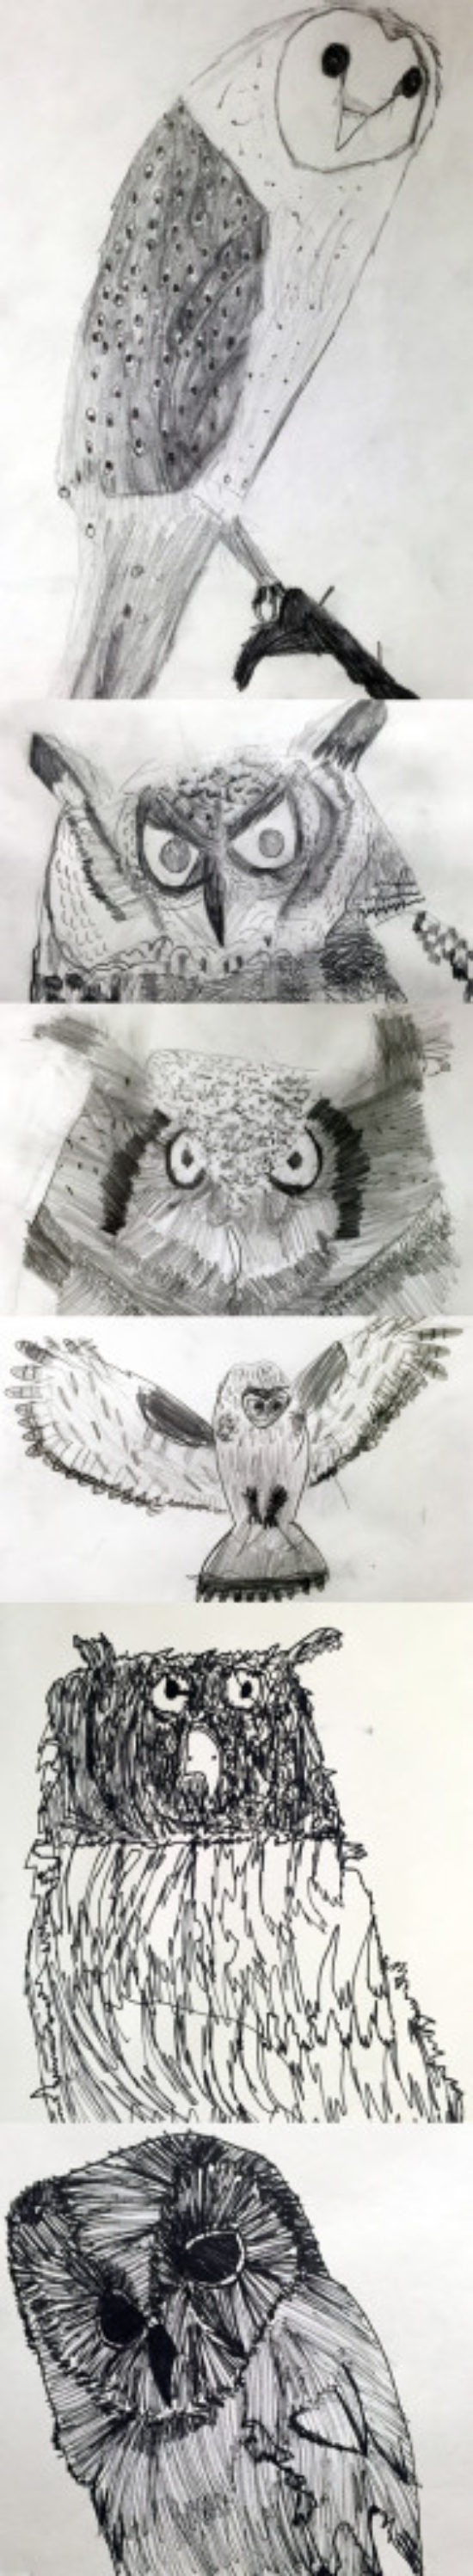 The Drawing Challenge Gallery